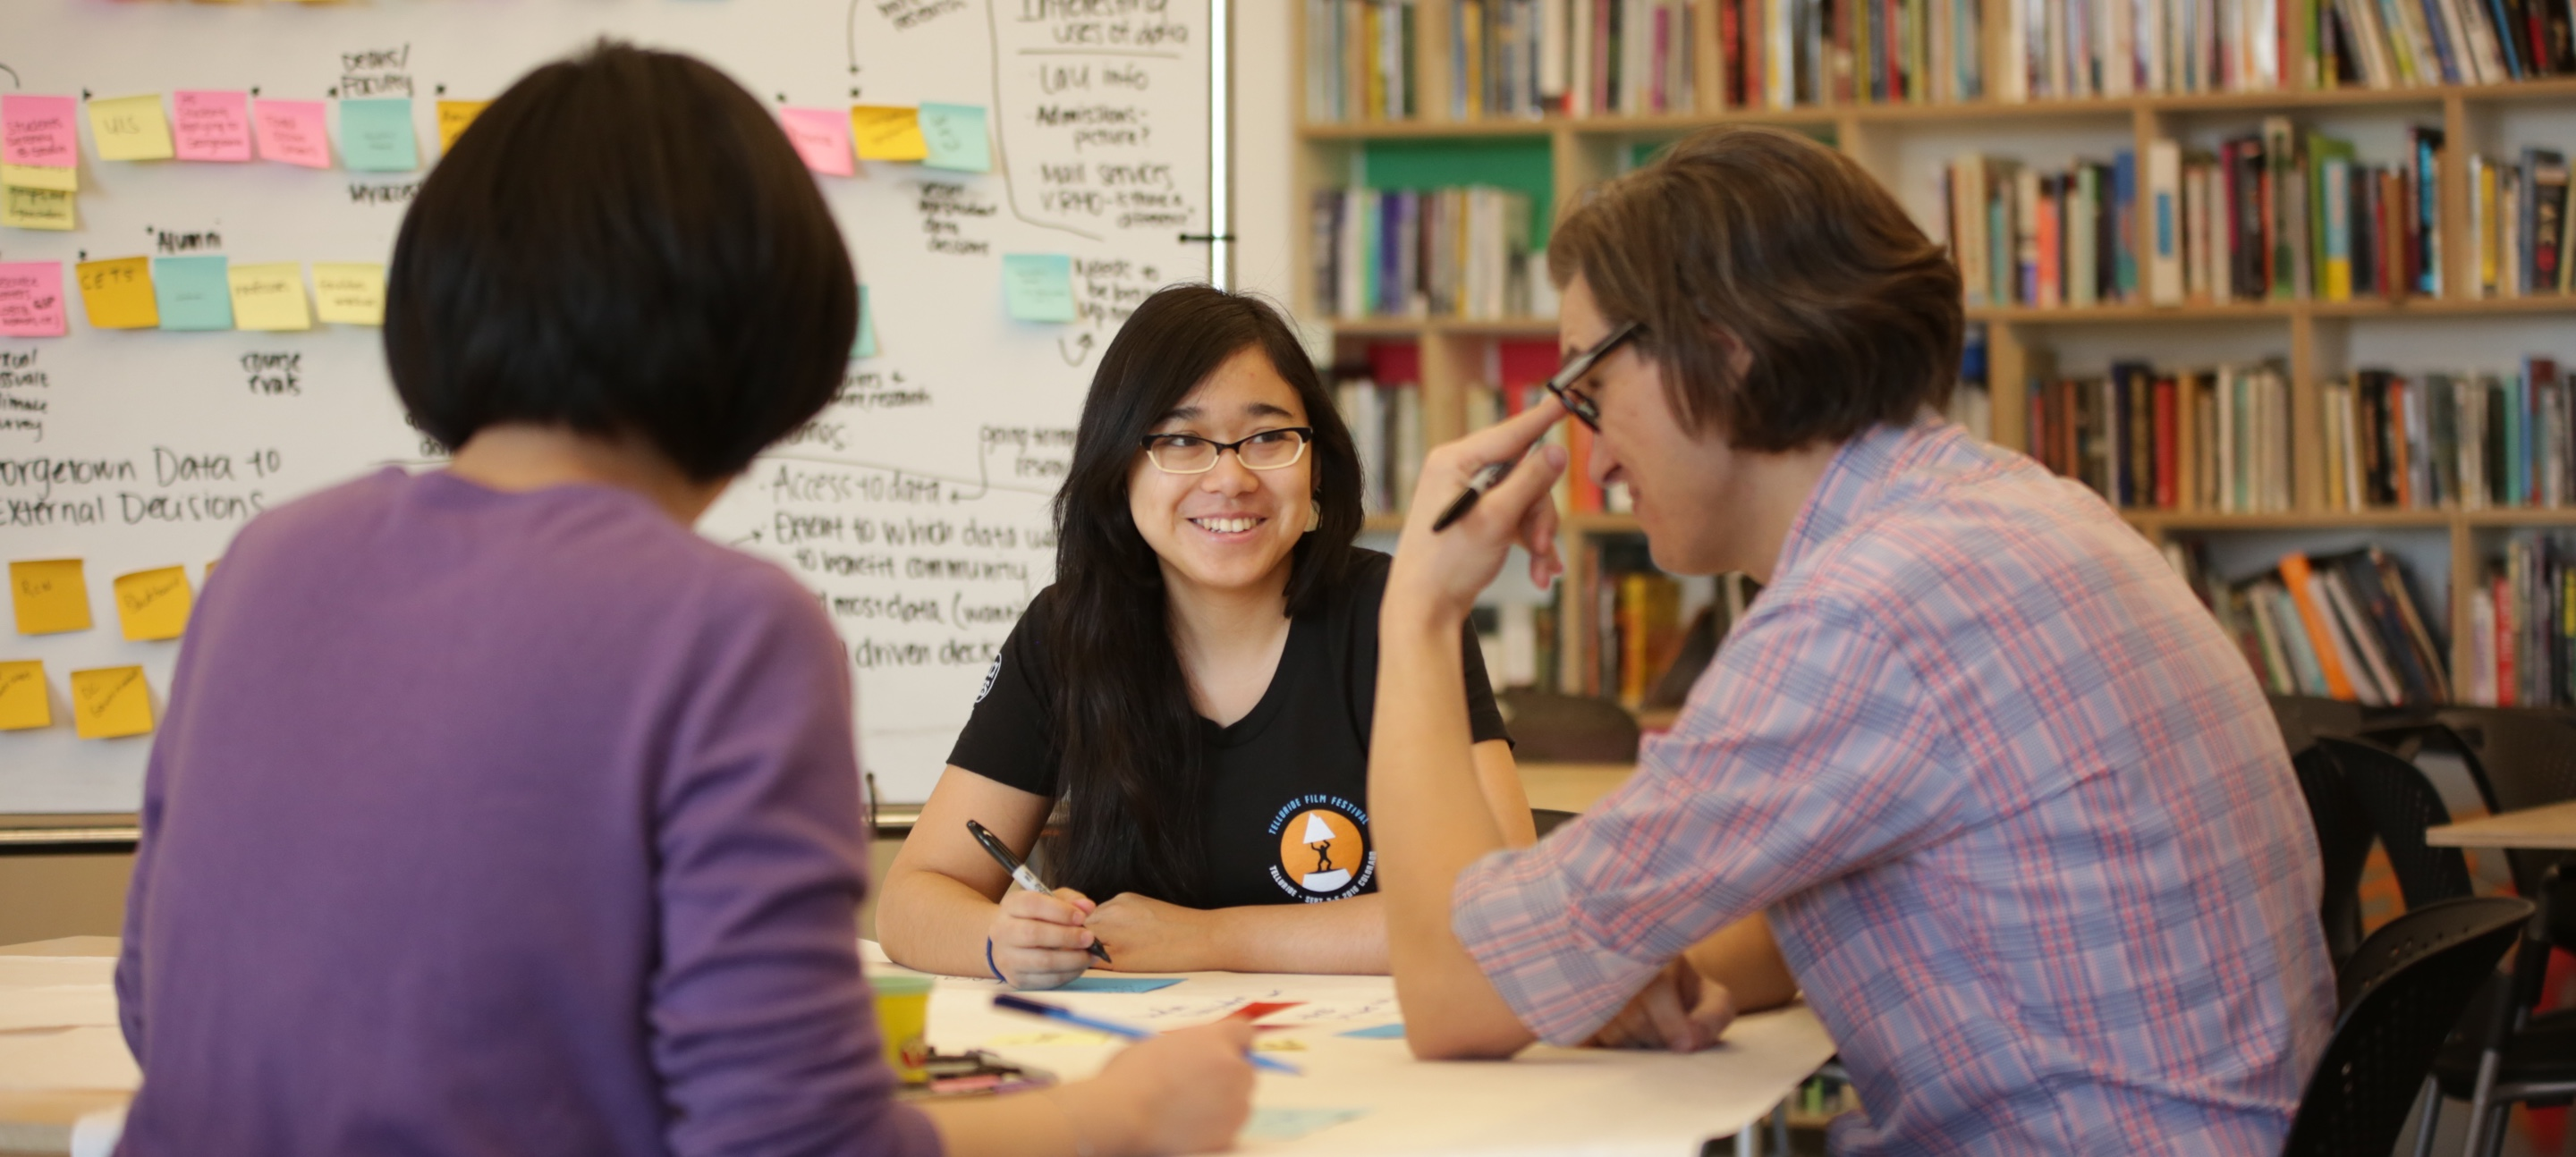 Three students collaborate during a design workshop.